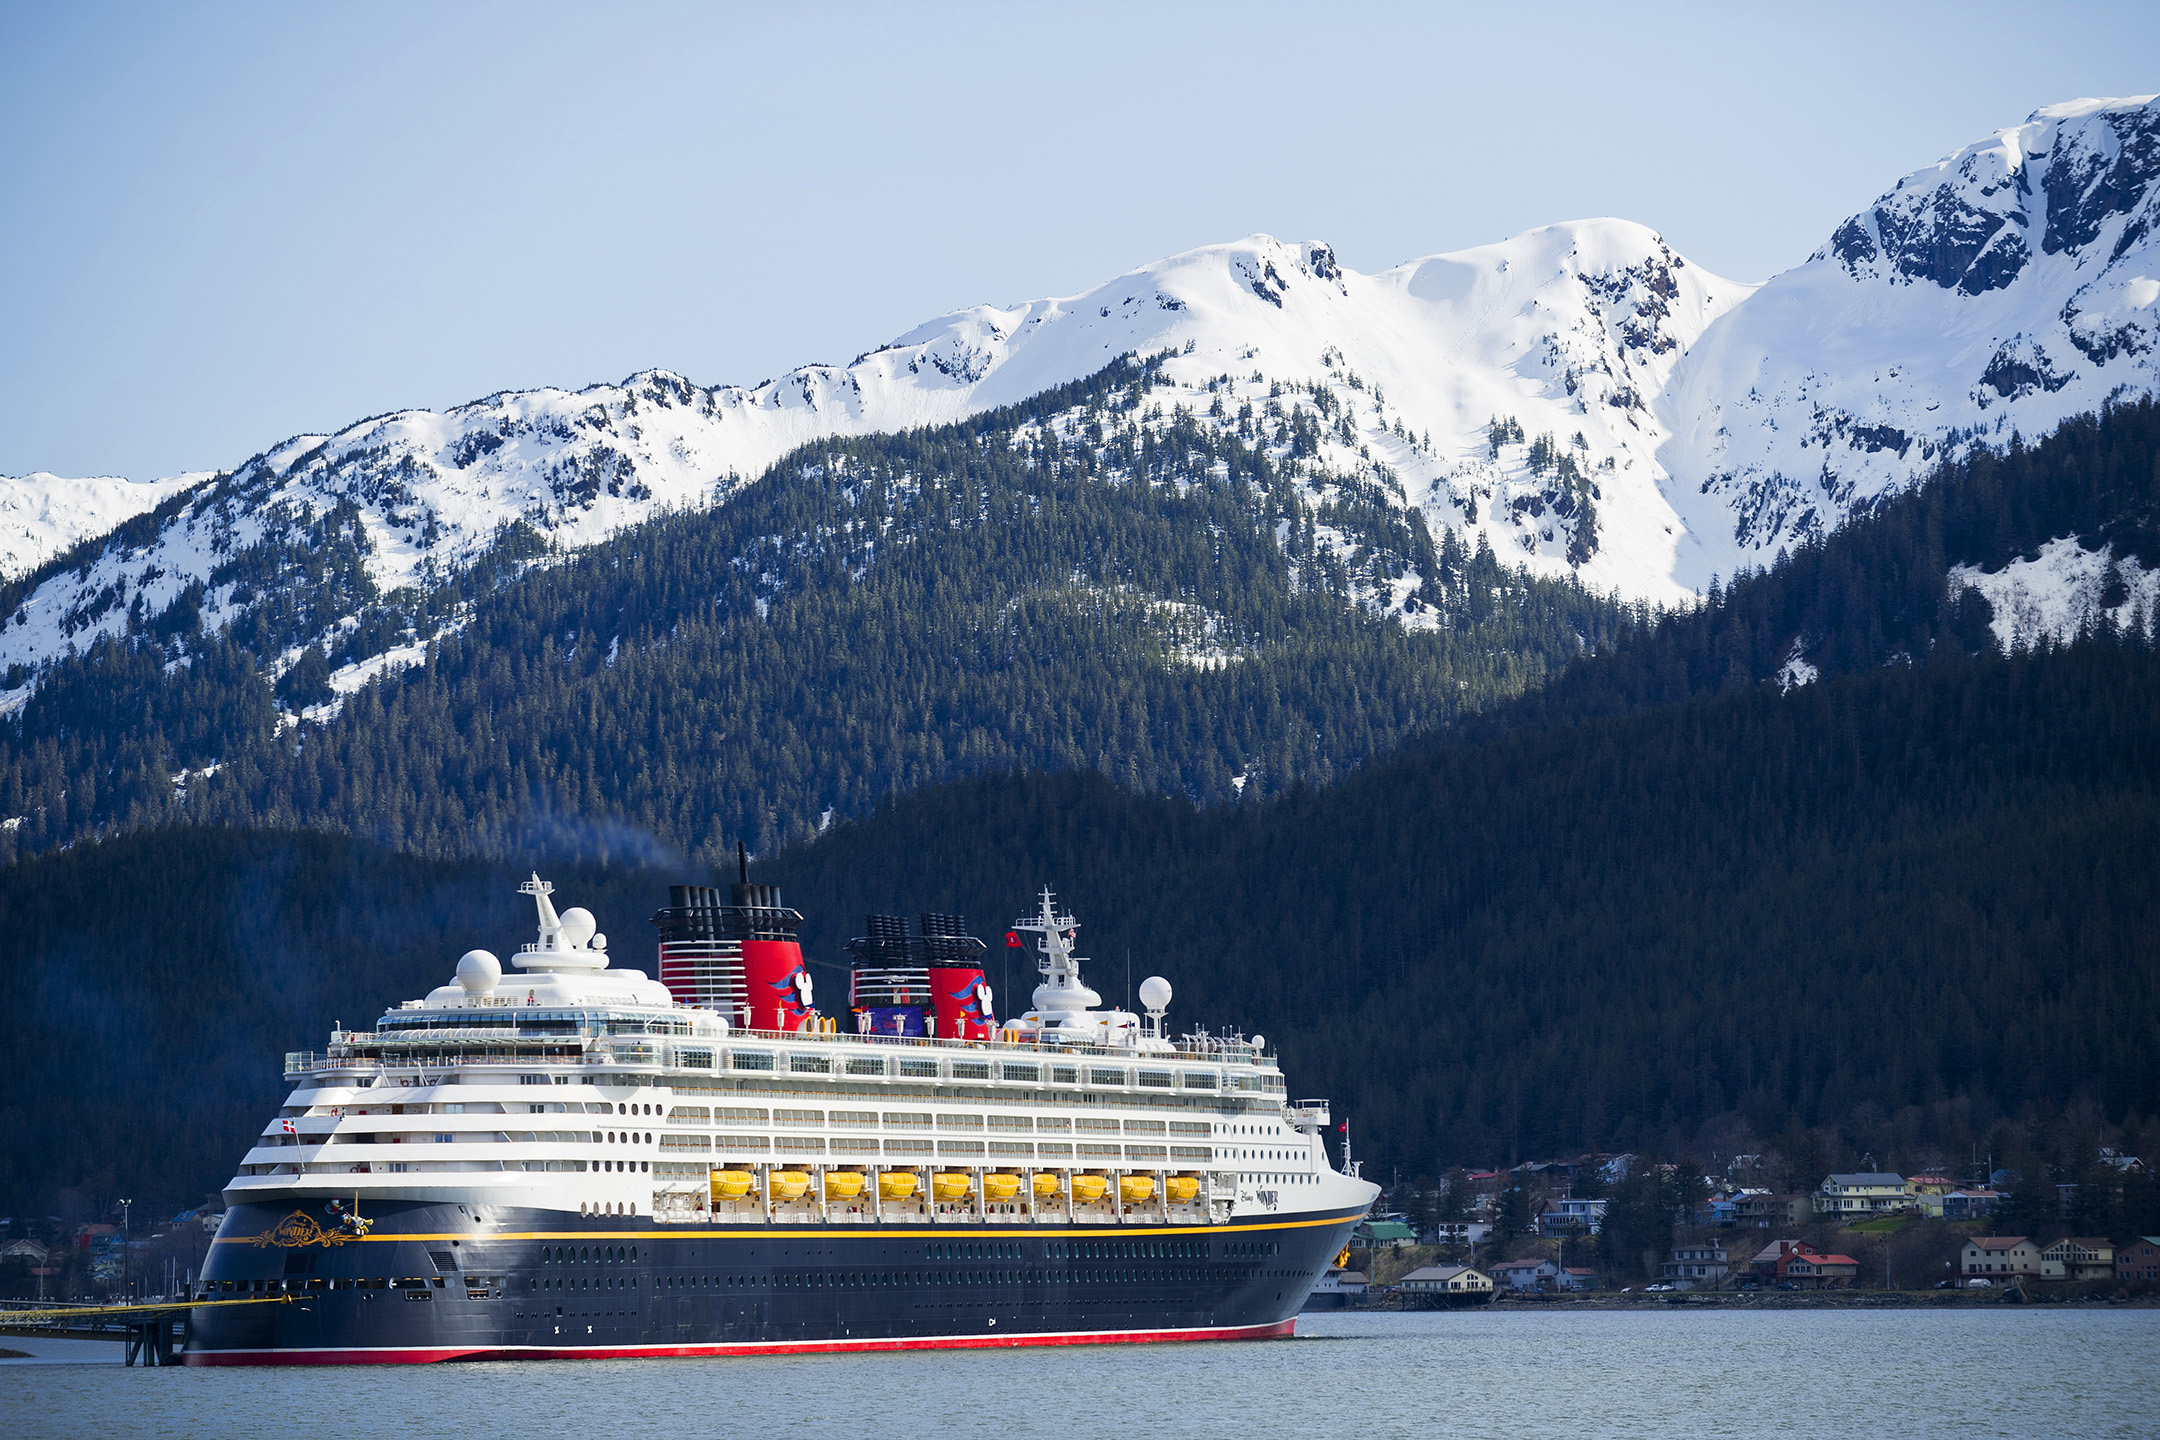 Disney ship in Alaska